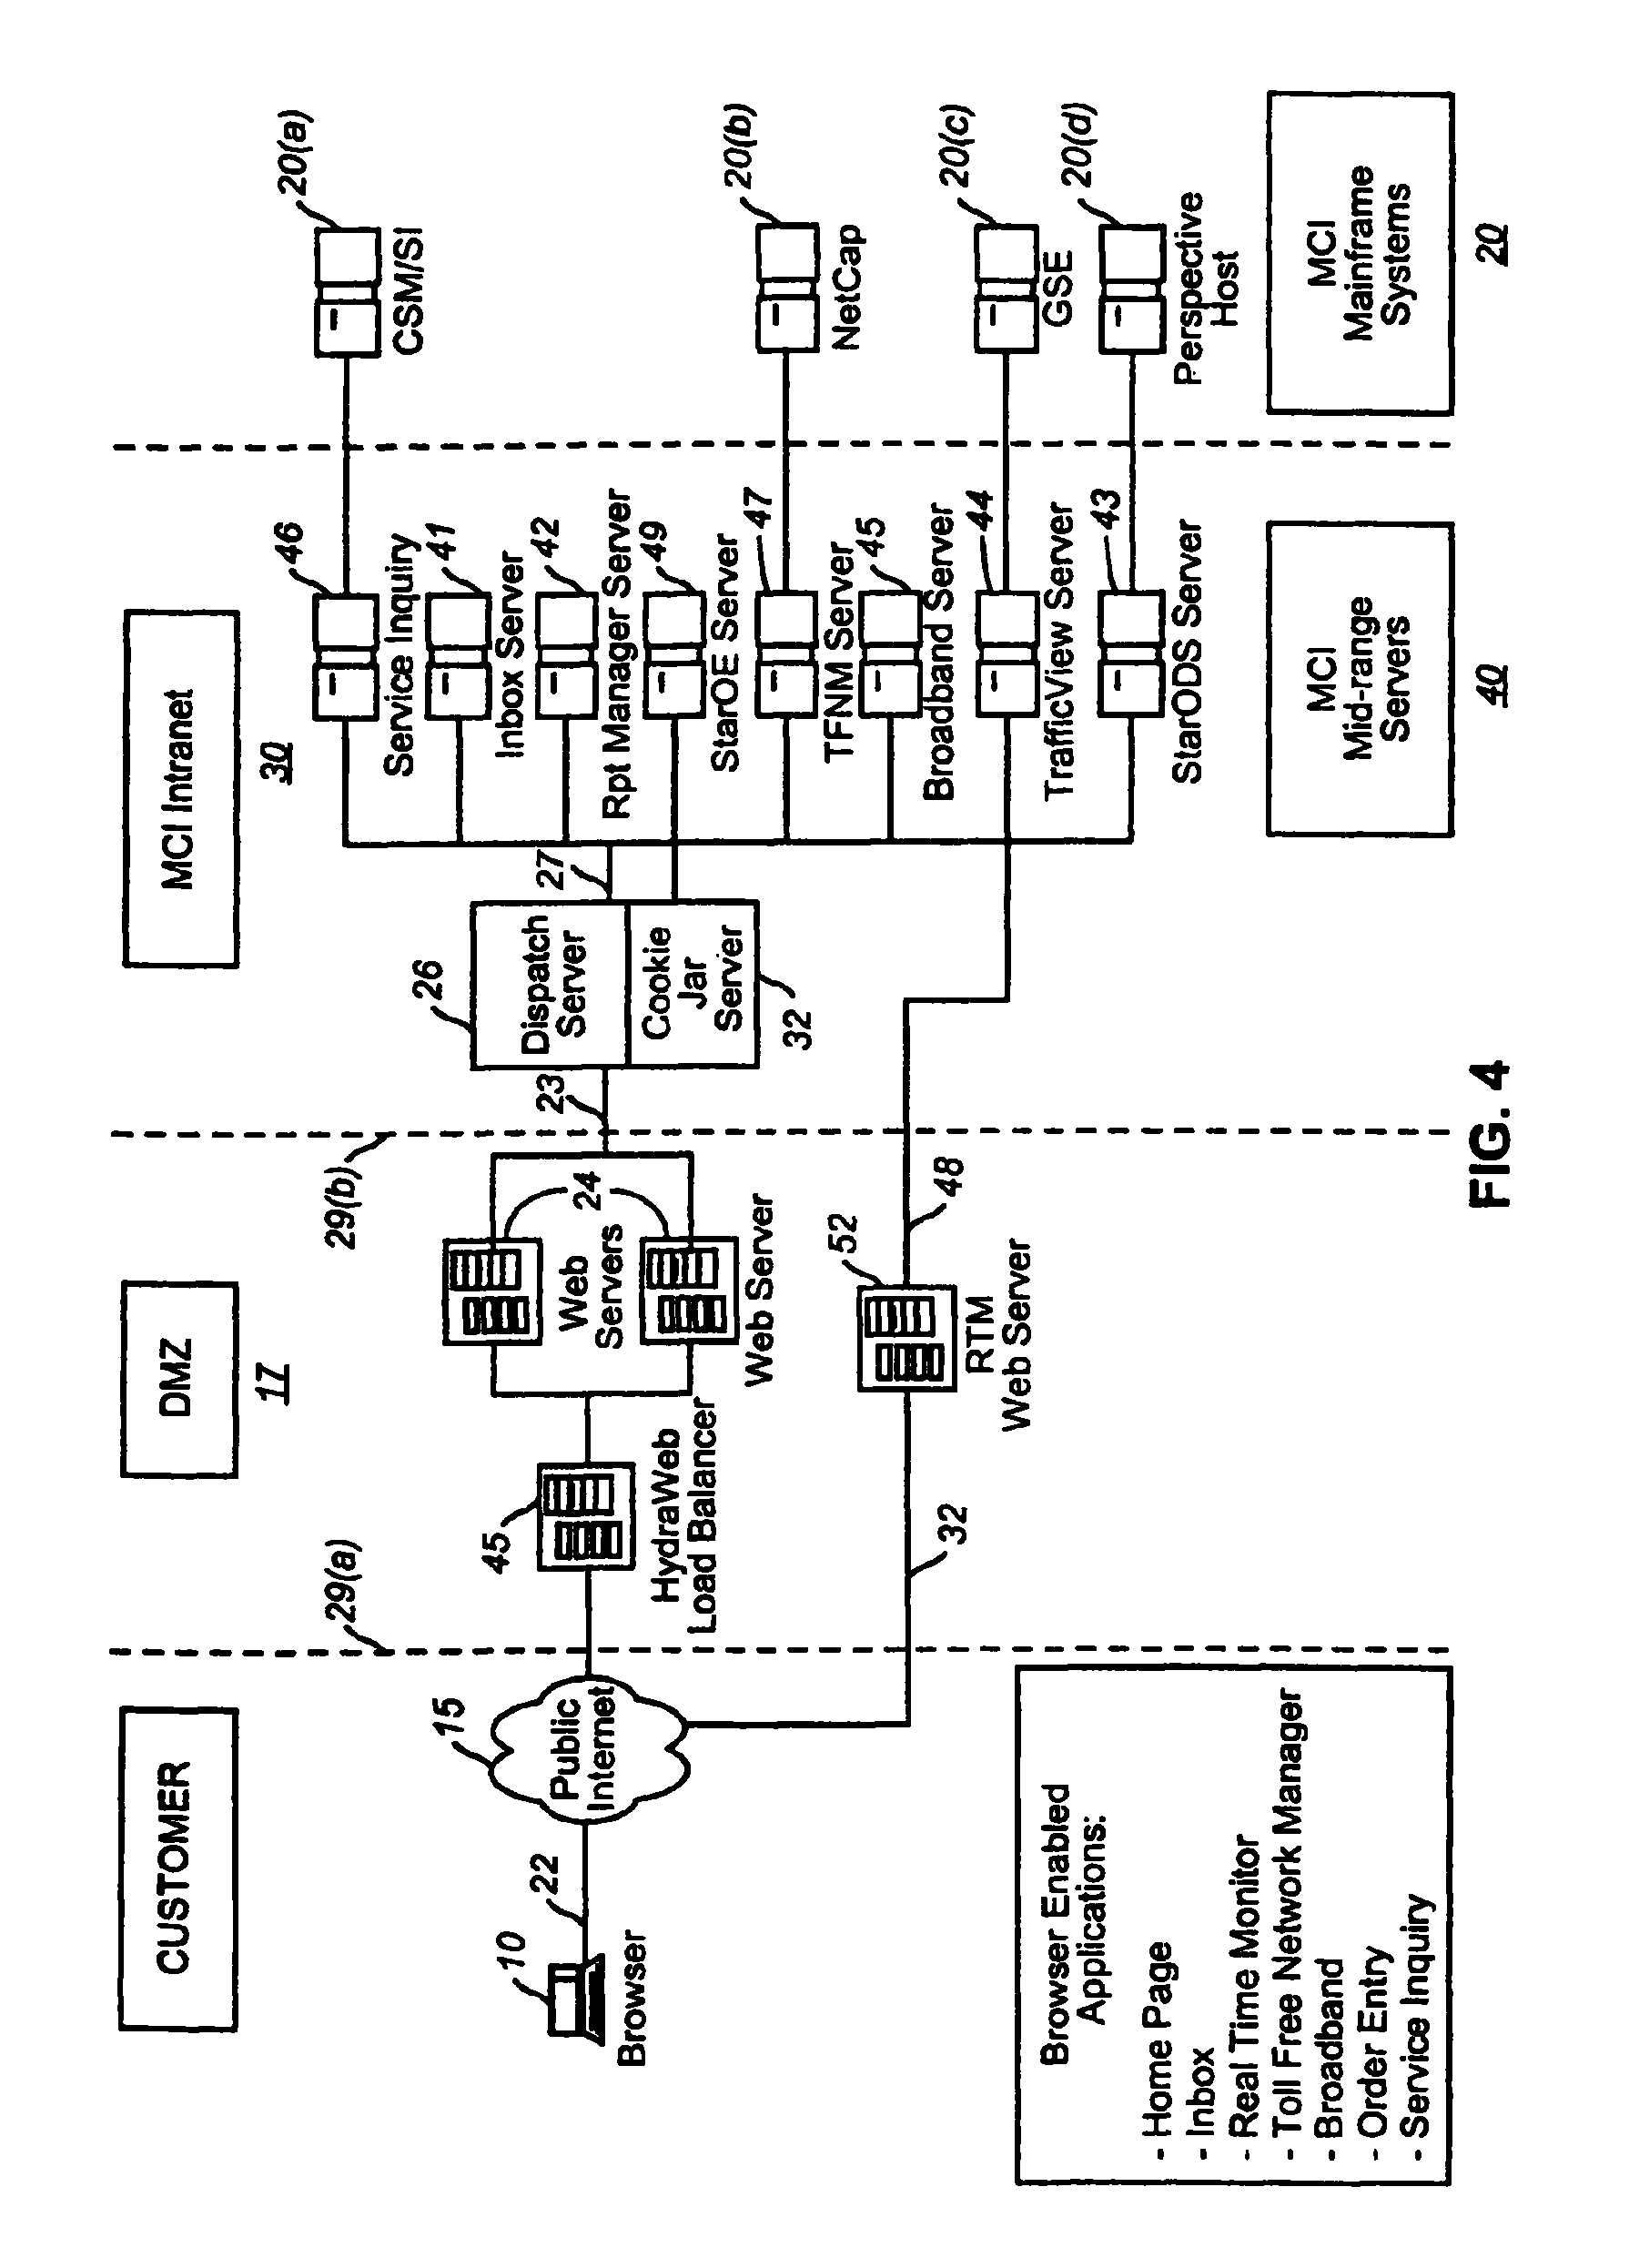 Us8935772b2 secure server architecture for web based data us8935772b2 secure server architecture for web based data management google patents cheapraybanclubmaster Choice Image